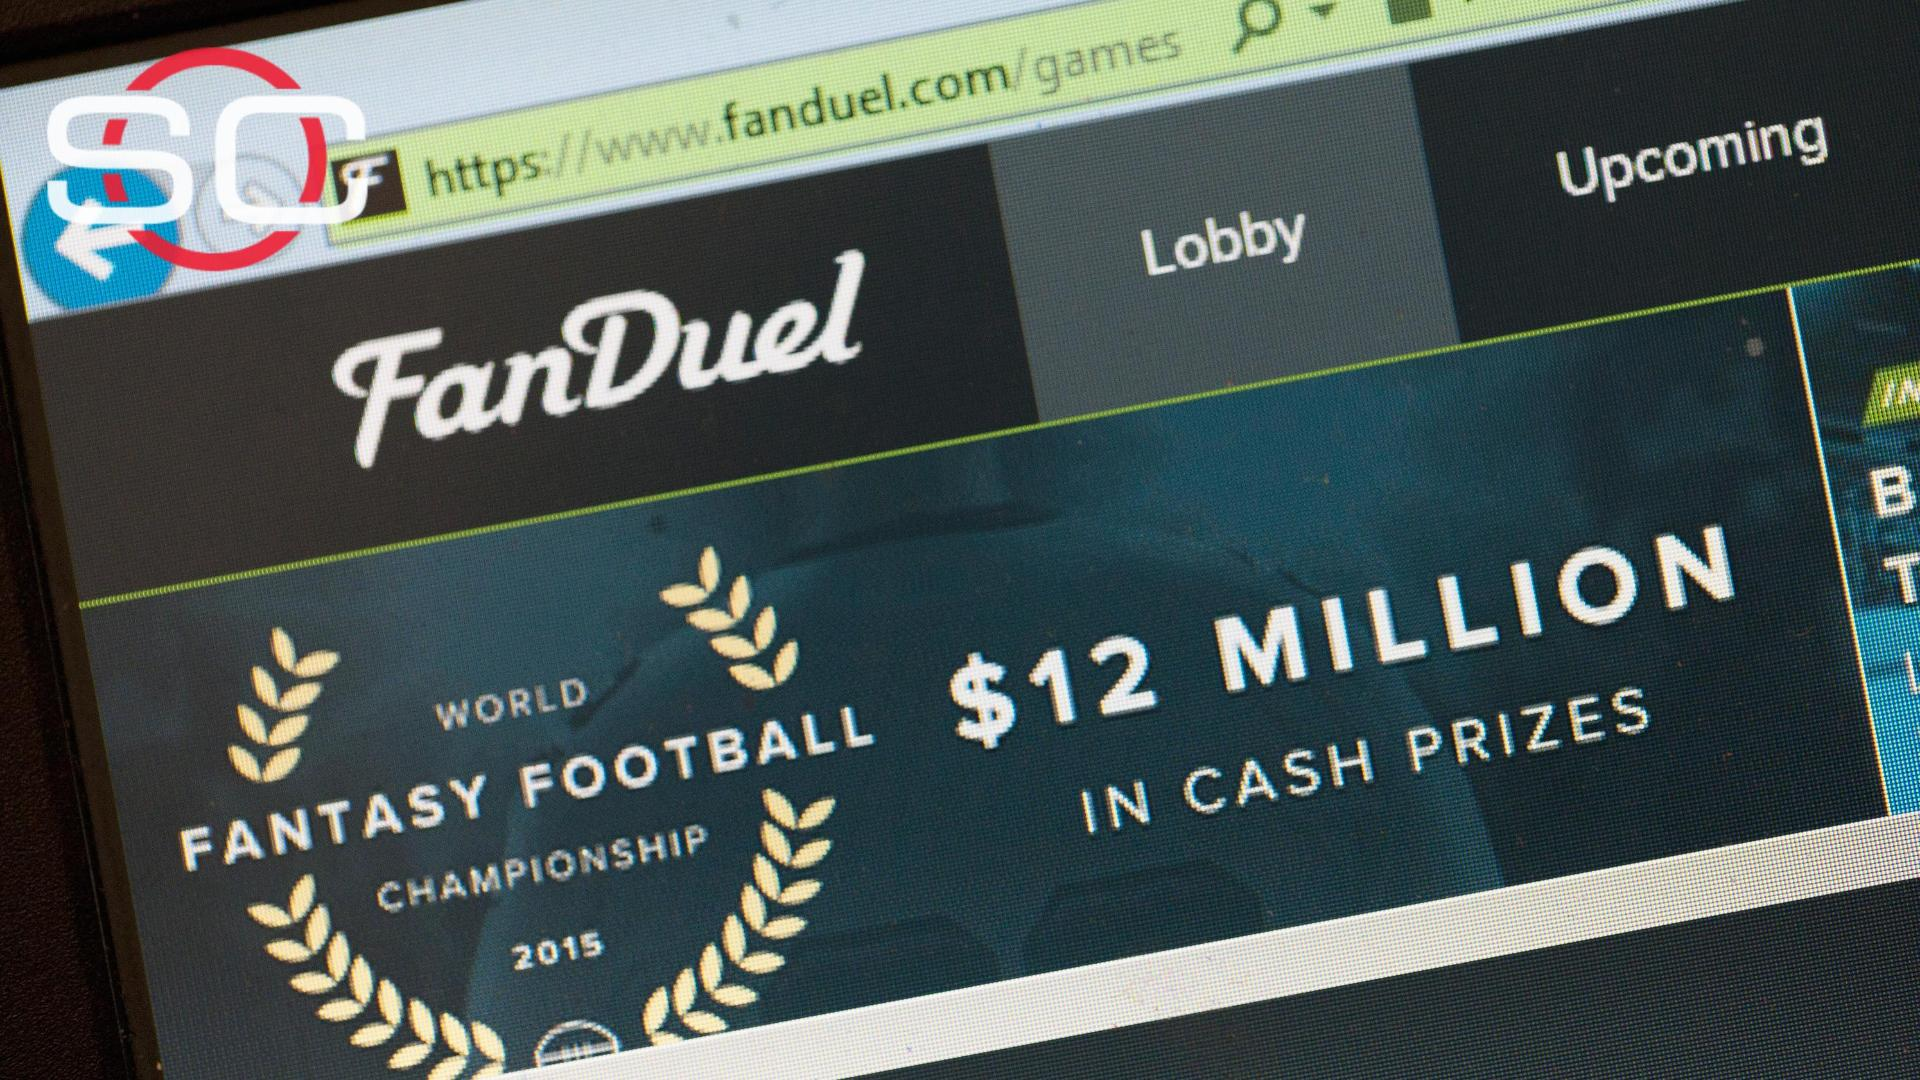 NCAA bans daily fantasy from championship advertising